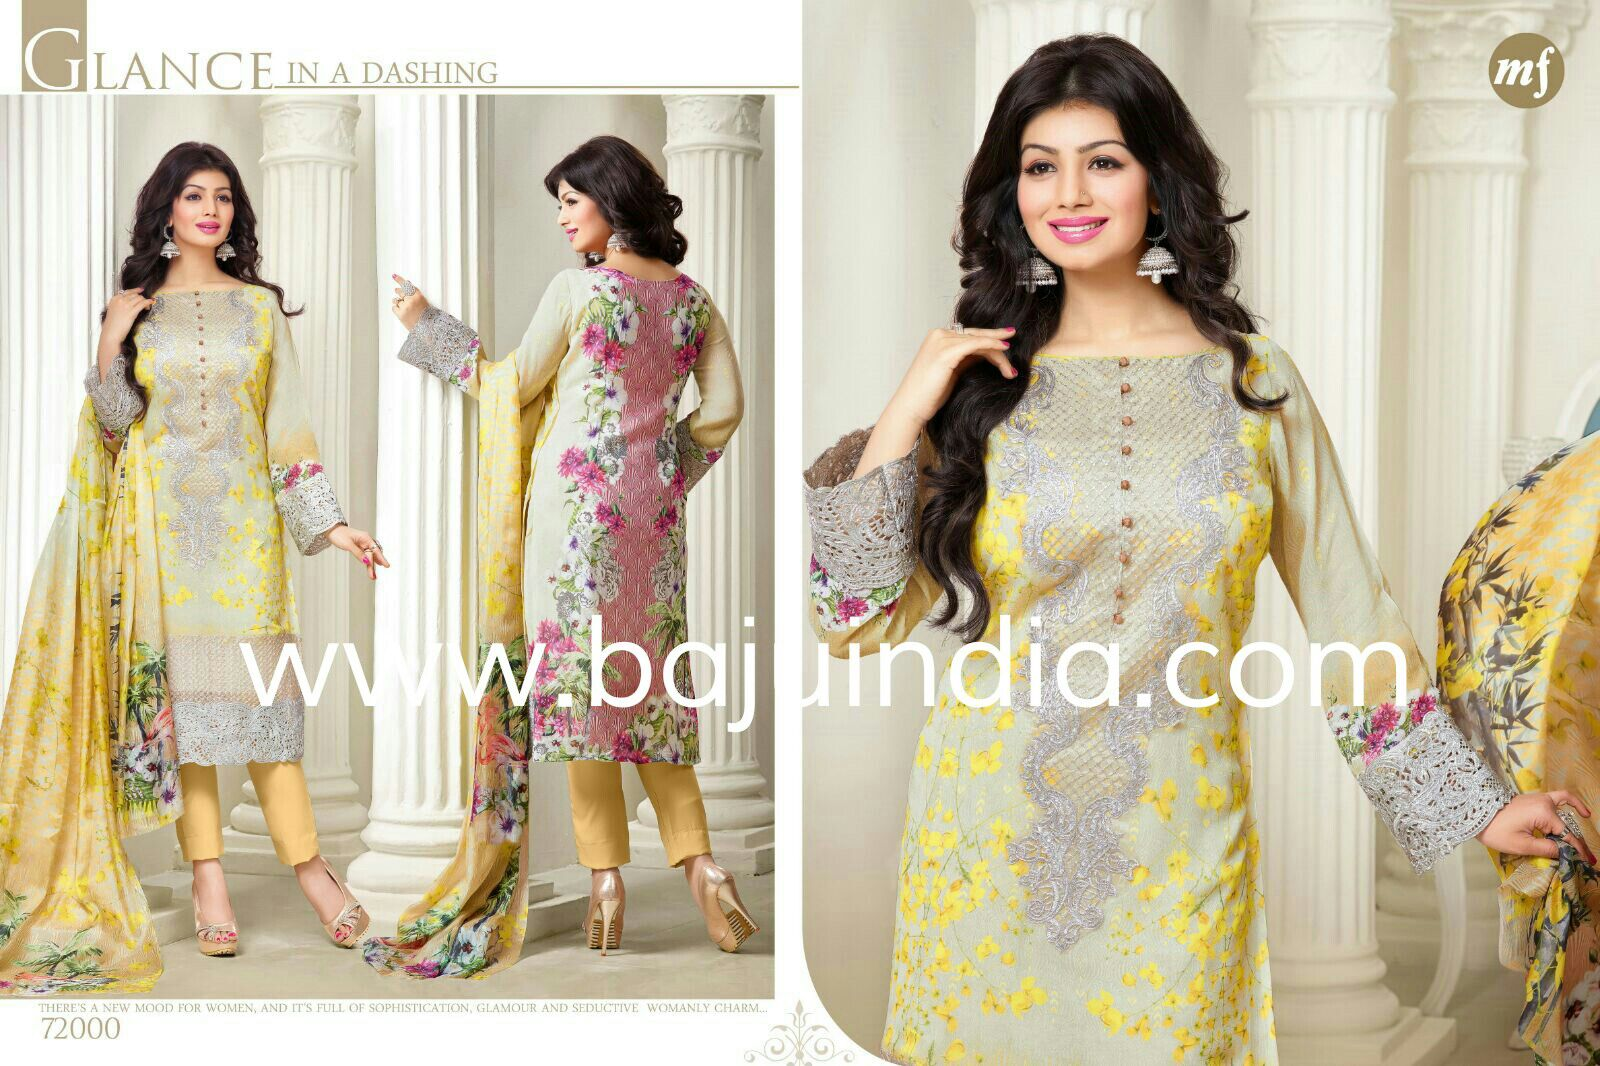 Baju India Muslim - Baju India Modern - Baju Khas India - Baju Adat India - Sari India Terbaru - Sari India Muslim - Baju Kerajaan India - Baju Salwaar India - MF 72000